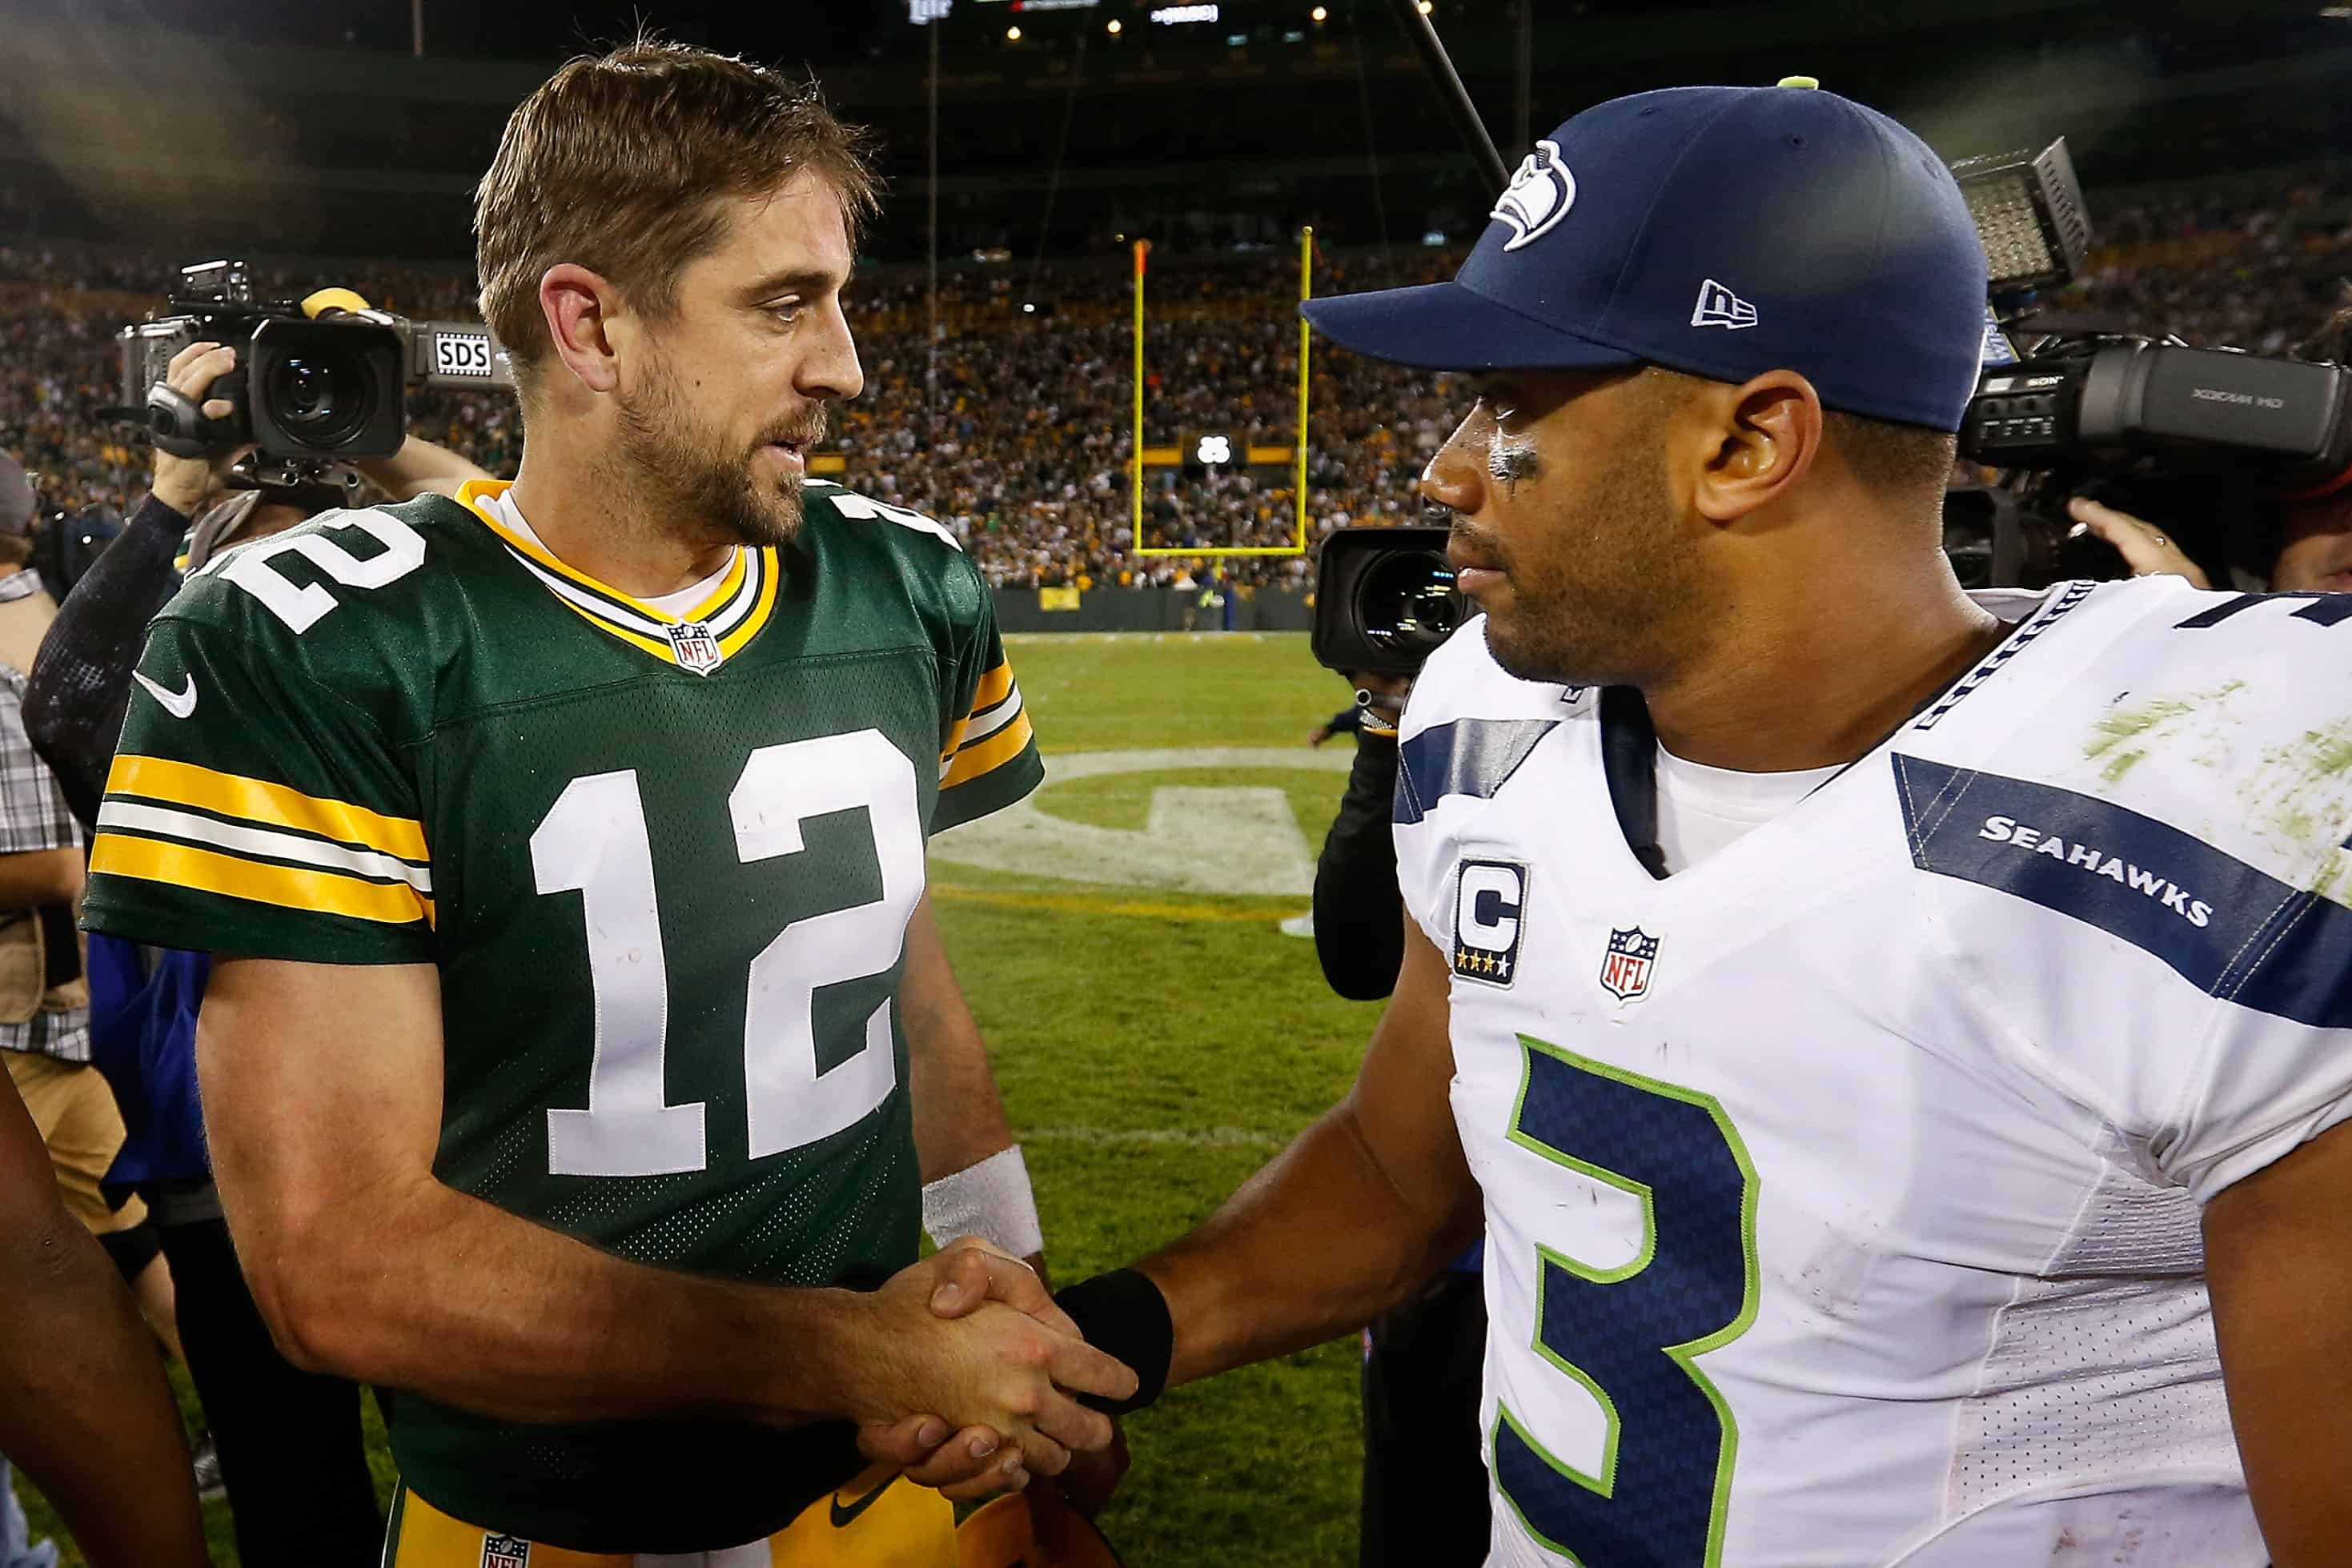 NFL: Green Bay Packers and Seattle Seahawks QBs.